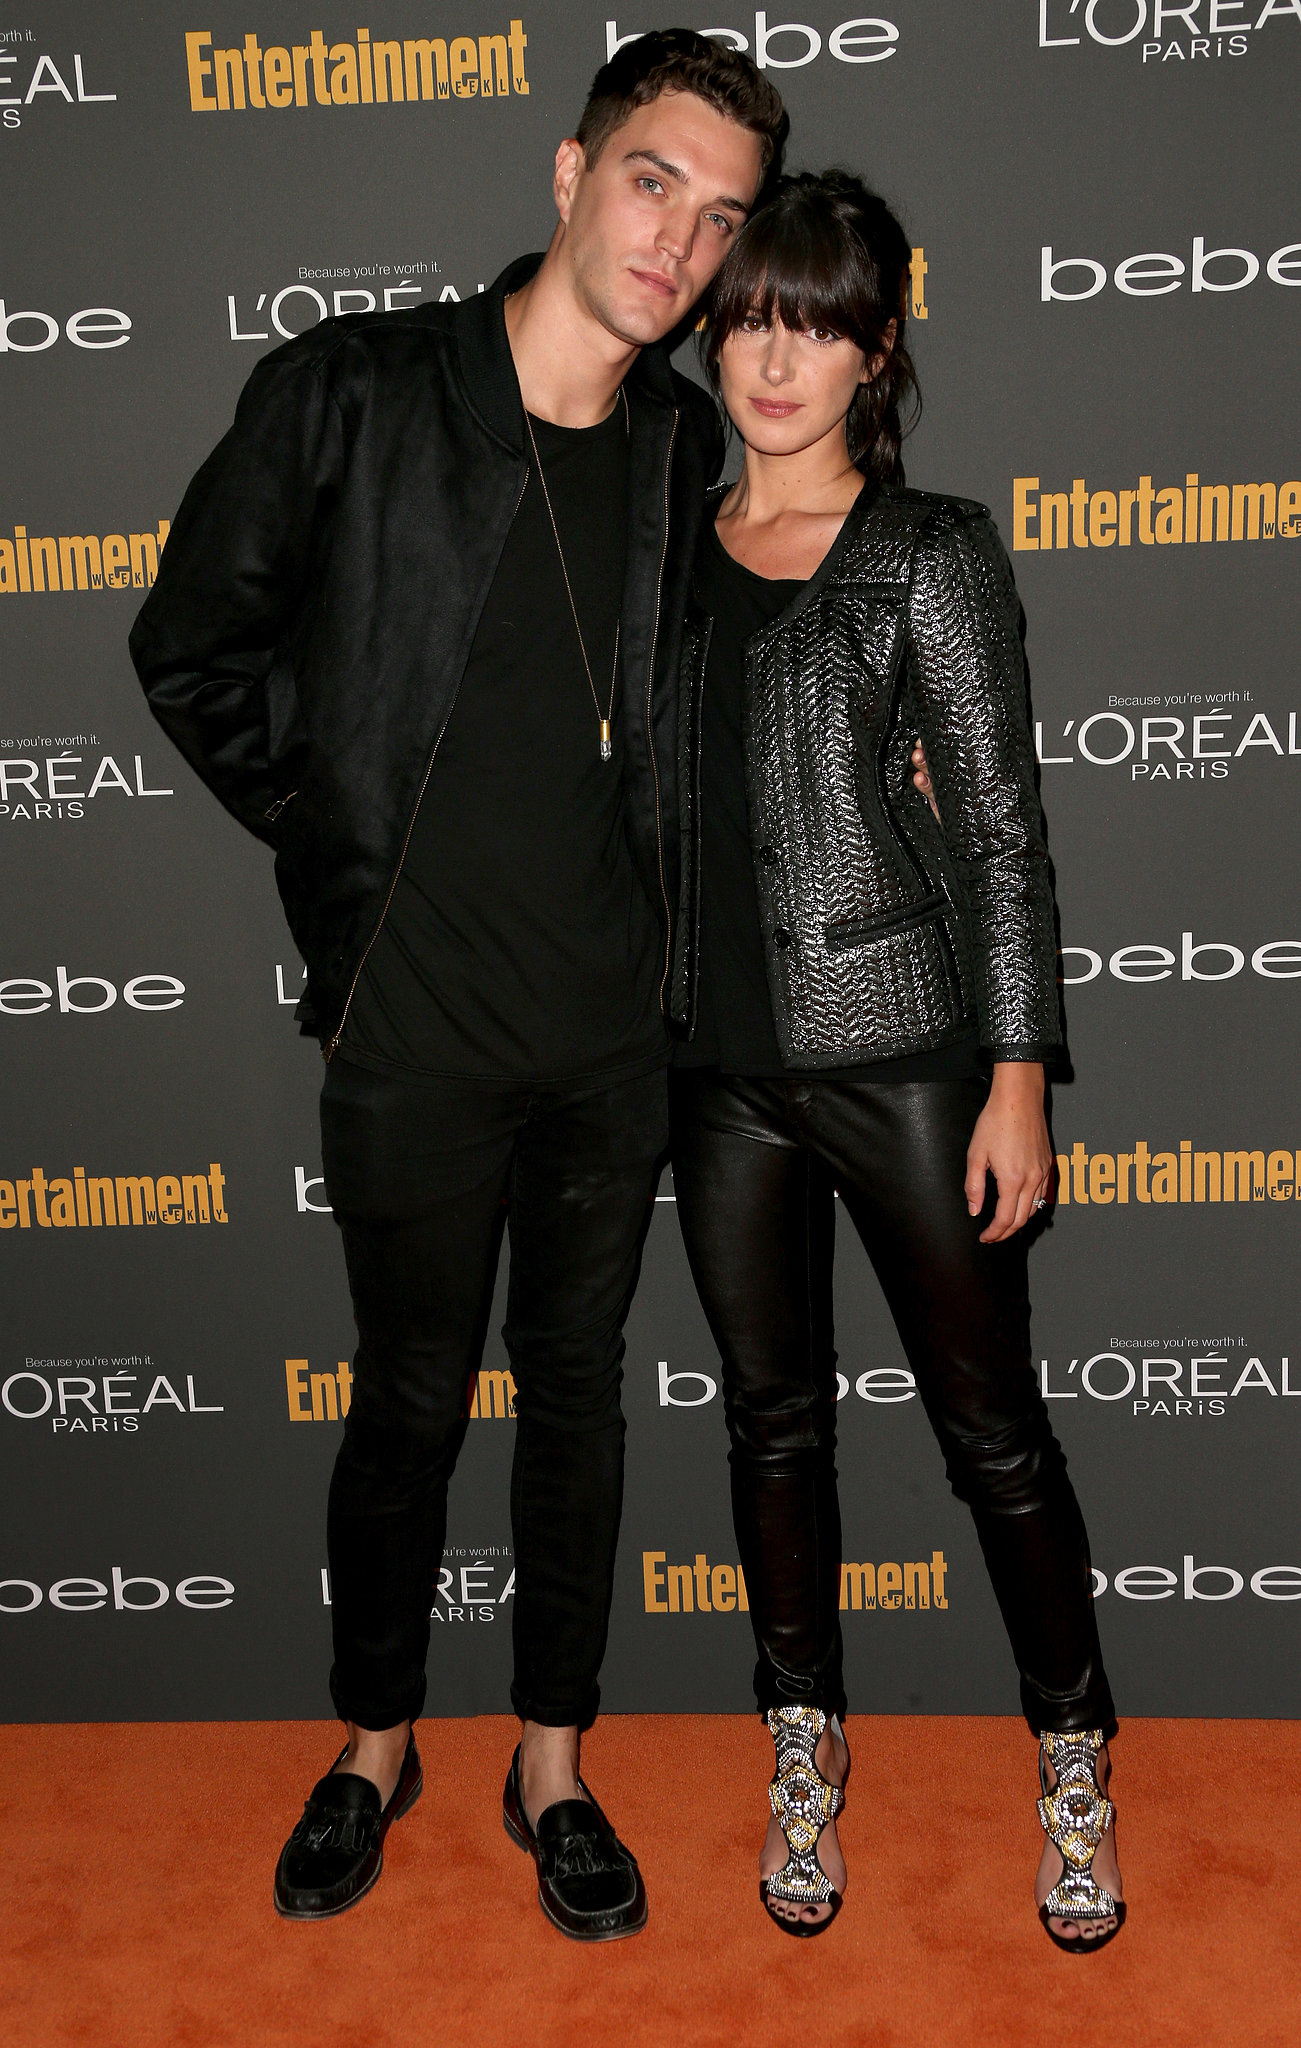 Shenae Grimes posed with her husband in a black leather j